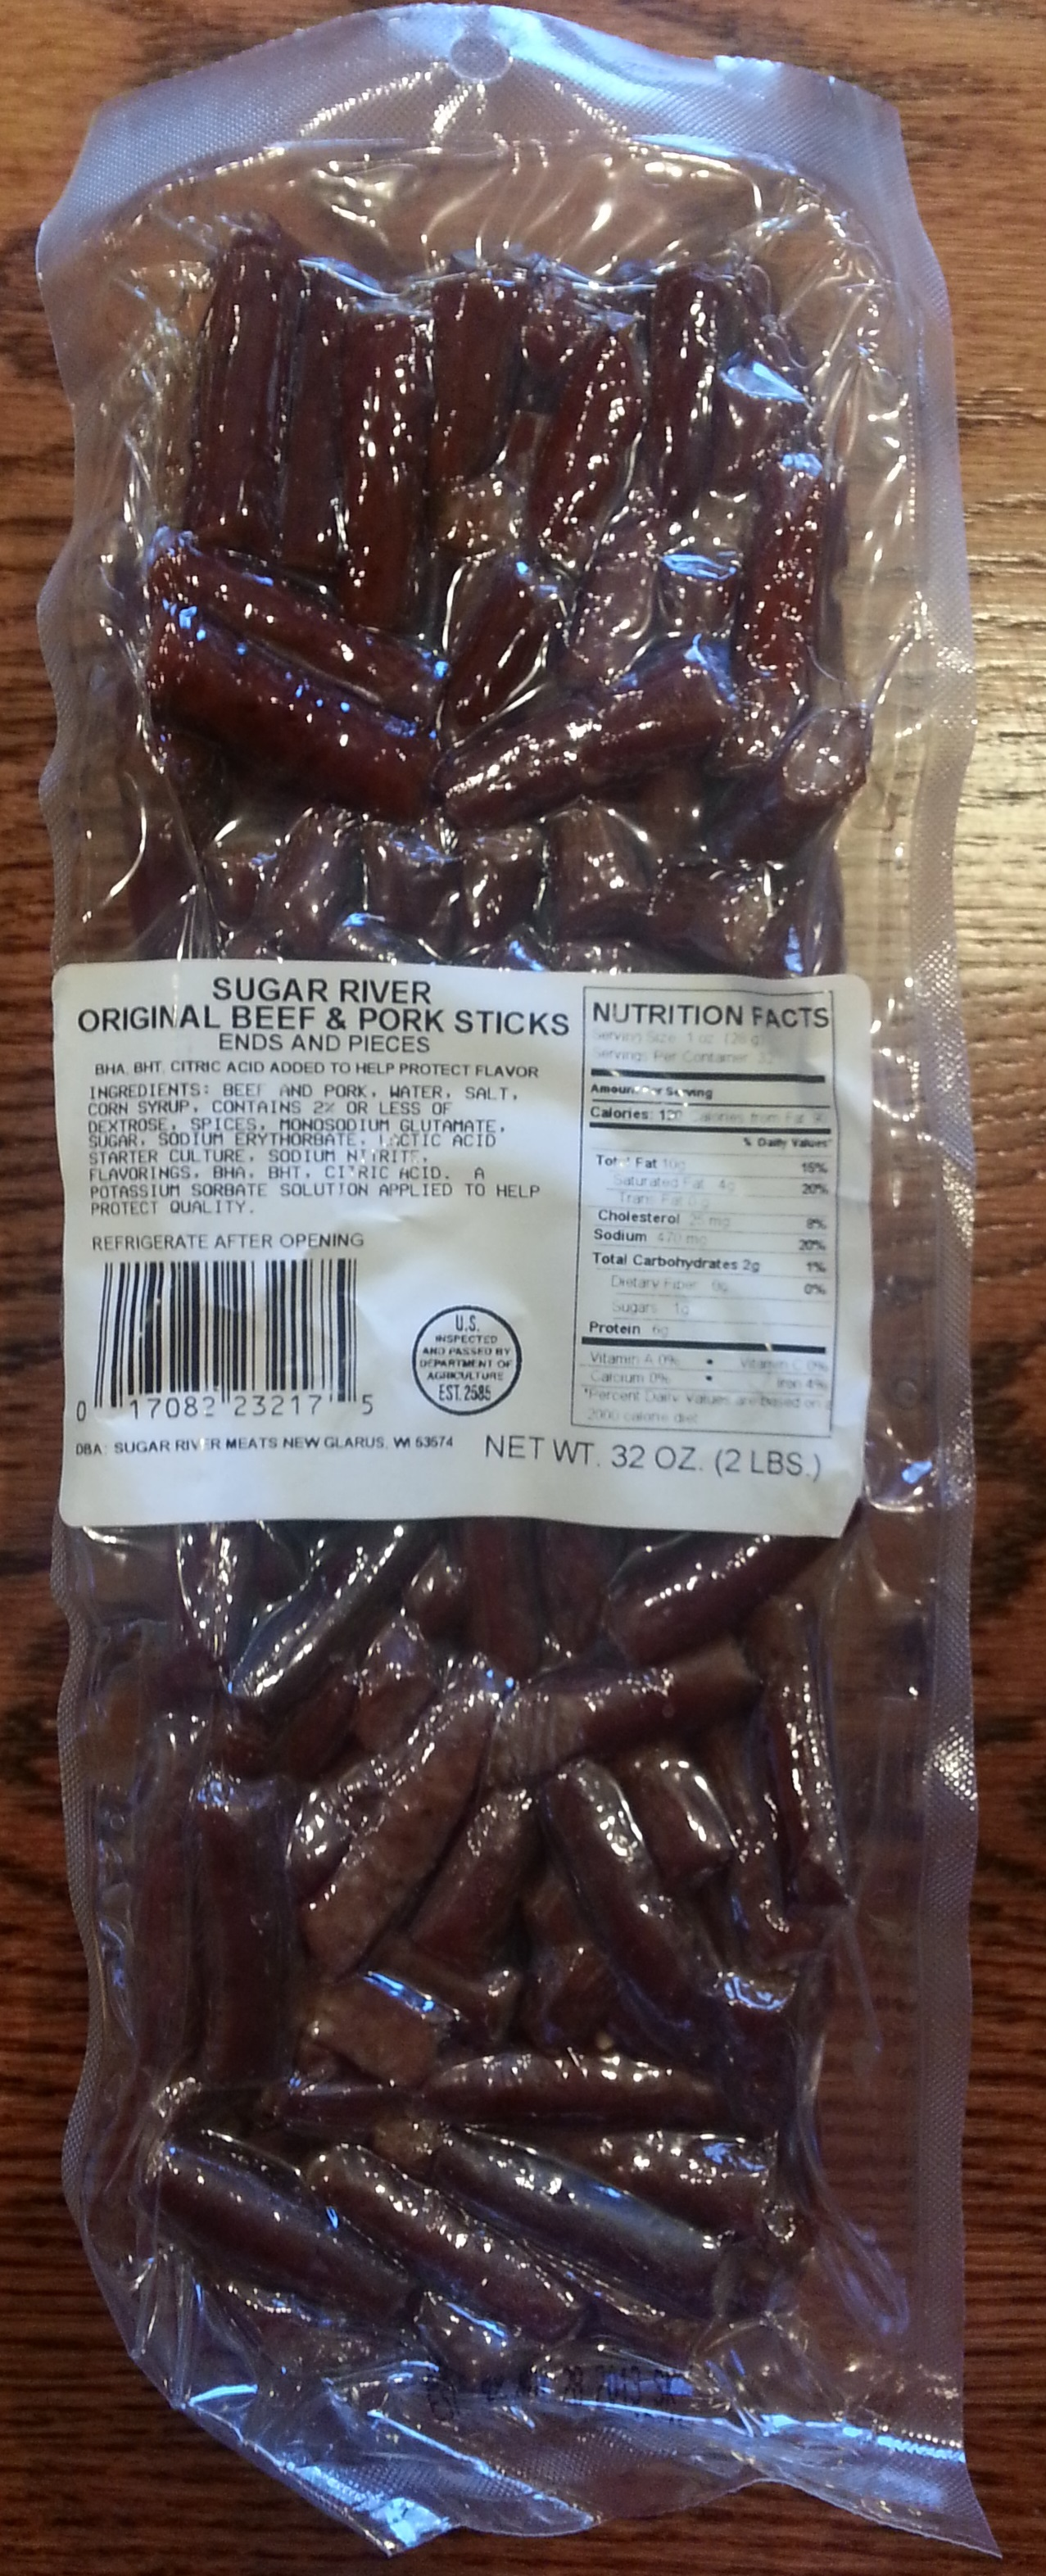 Sugar River Original Beef & Pork Sticks Ends and Pieces